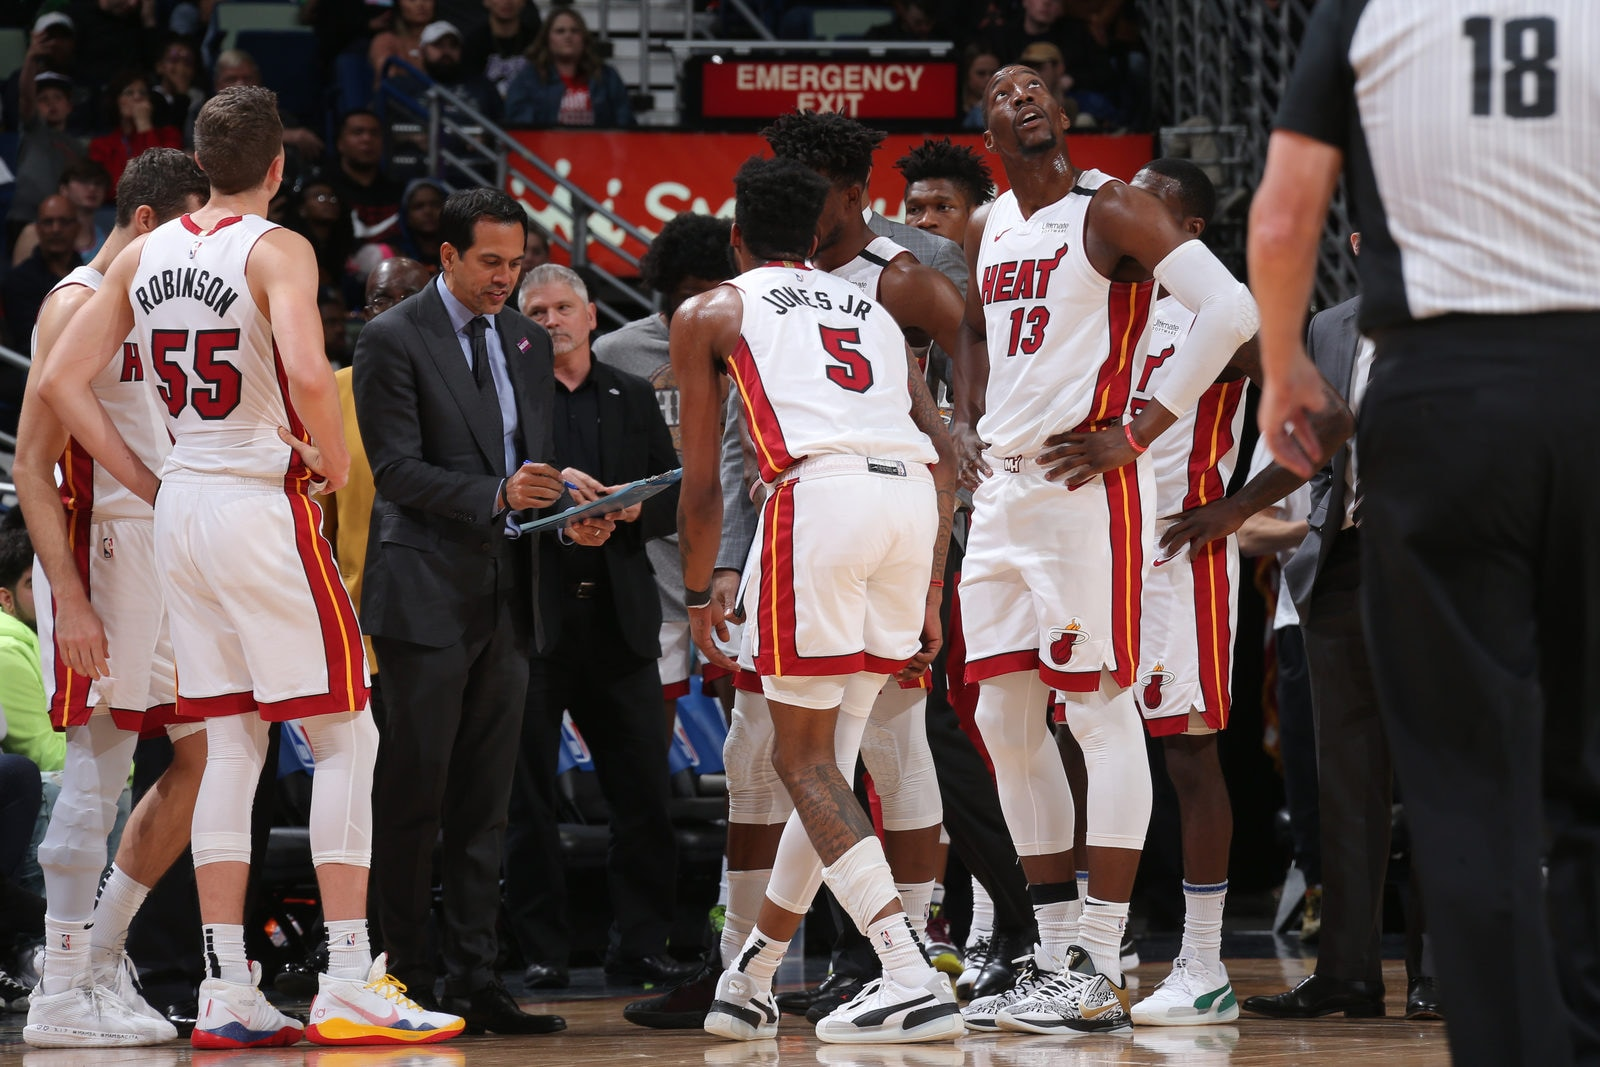 Erik Spoelstra of the Miami Heat draws up a play in the huddle during the game on March 6, 2020 at the Smoothie King Center in New Orleans, Louisiana